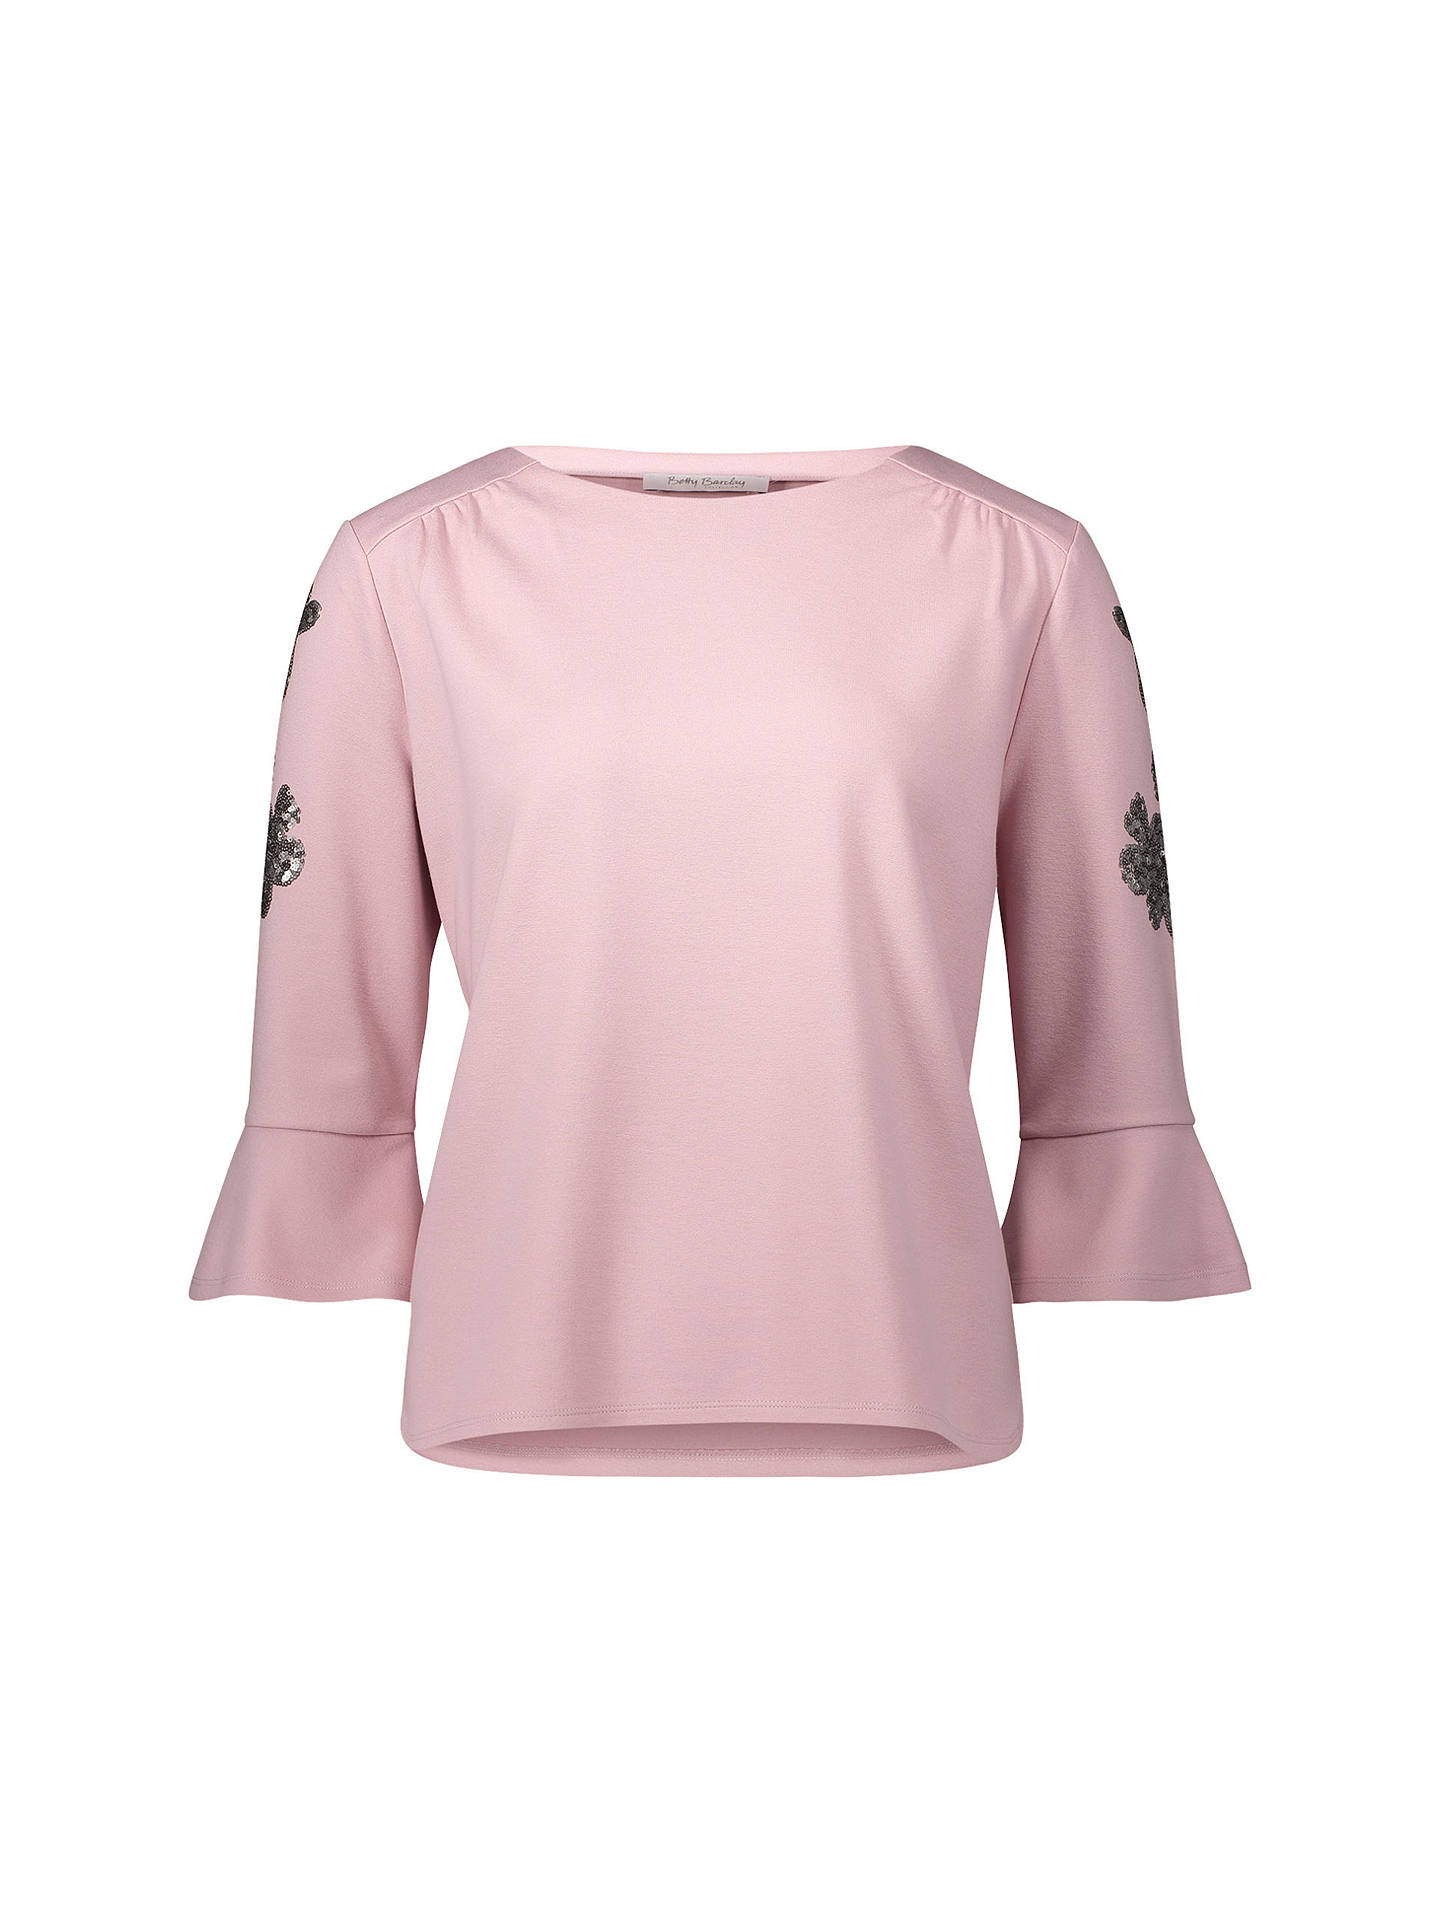 ... BuyBetty Barclay Embellished Sleeve Top, Pink, 10 Online at  johnlewis.com ... b667b5c9c6